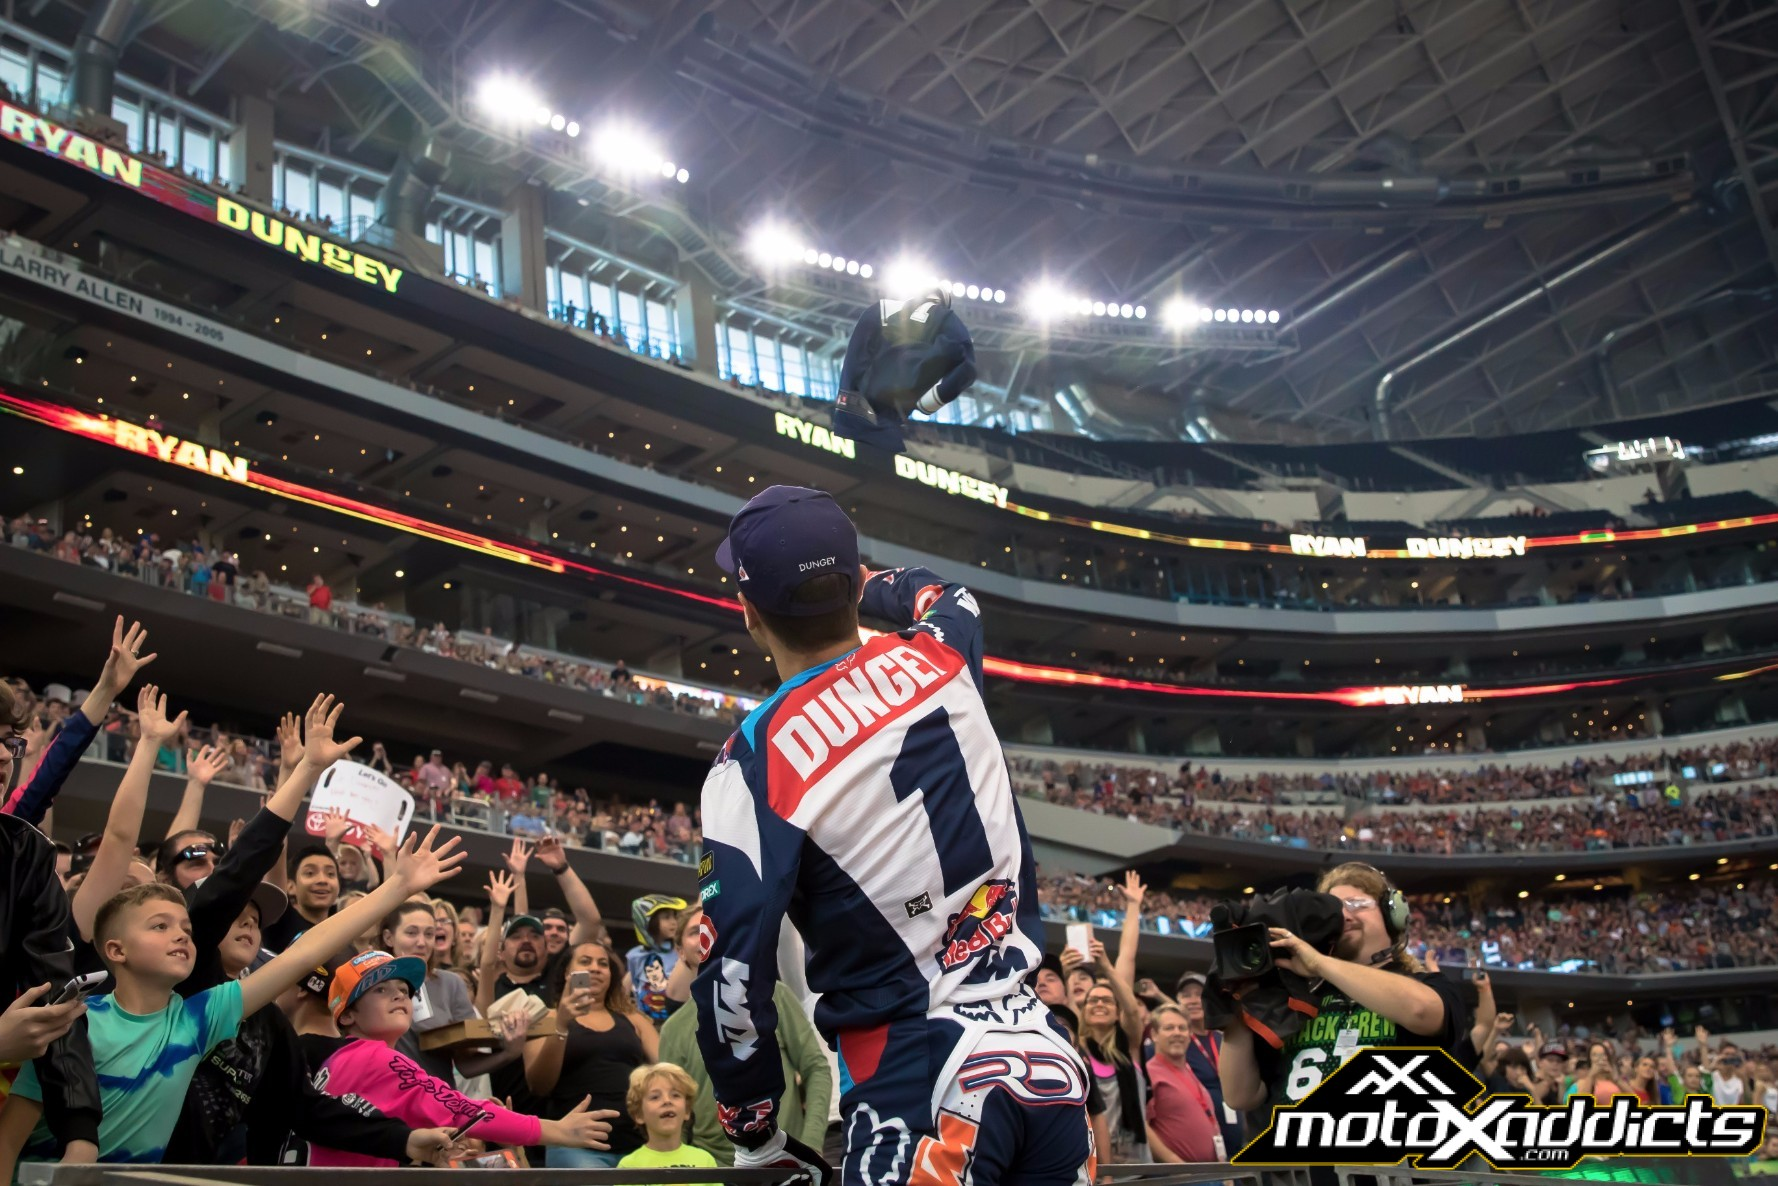 Ryan Dungey leads the 450SX Championship by 18 heading into his home race in Minneapolis. Photo by: Chase Yocom